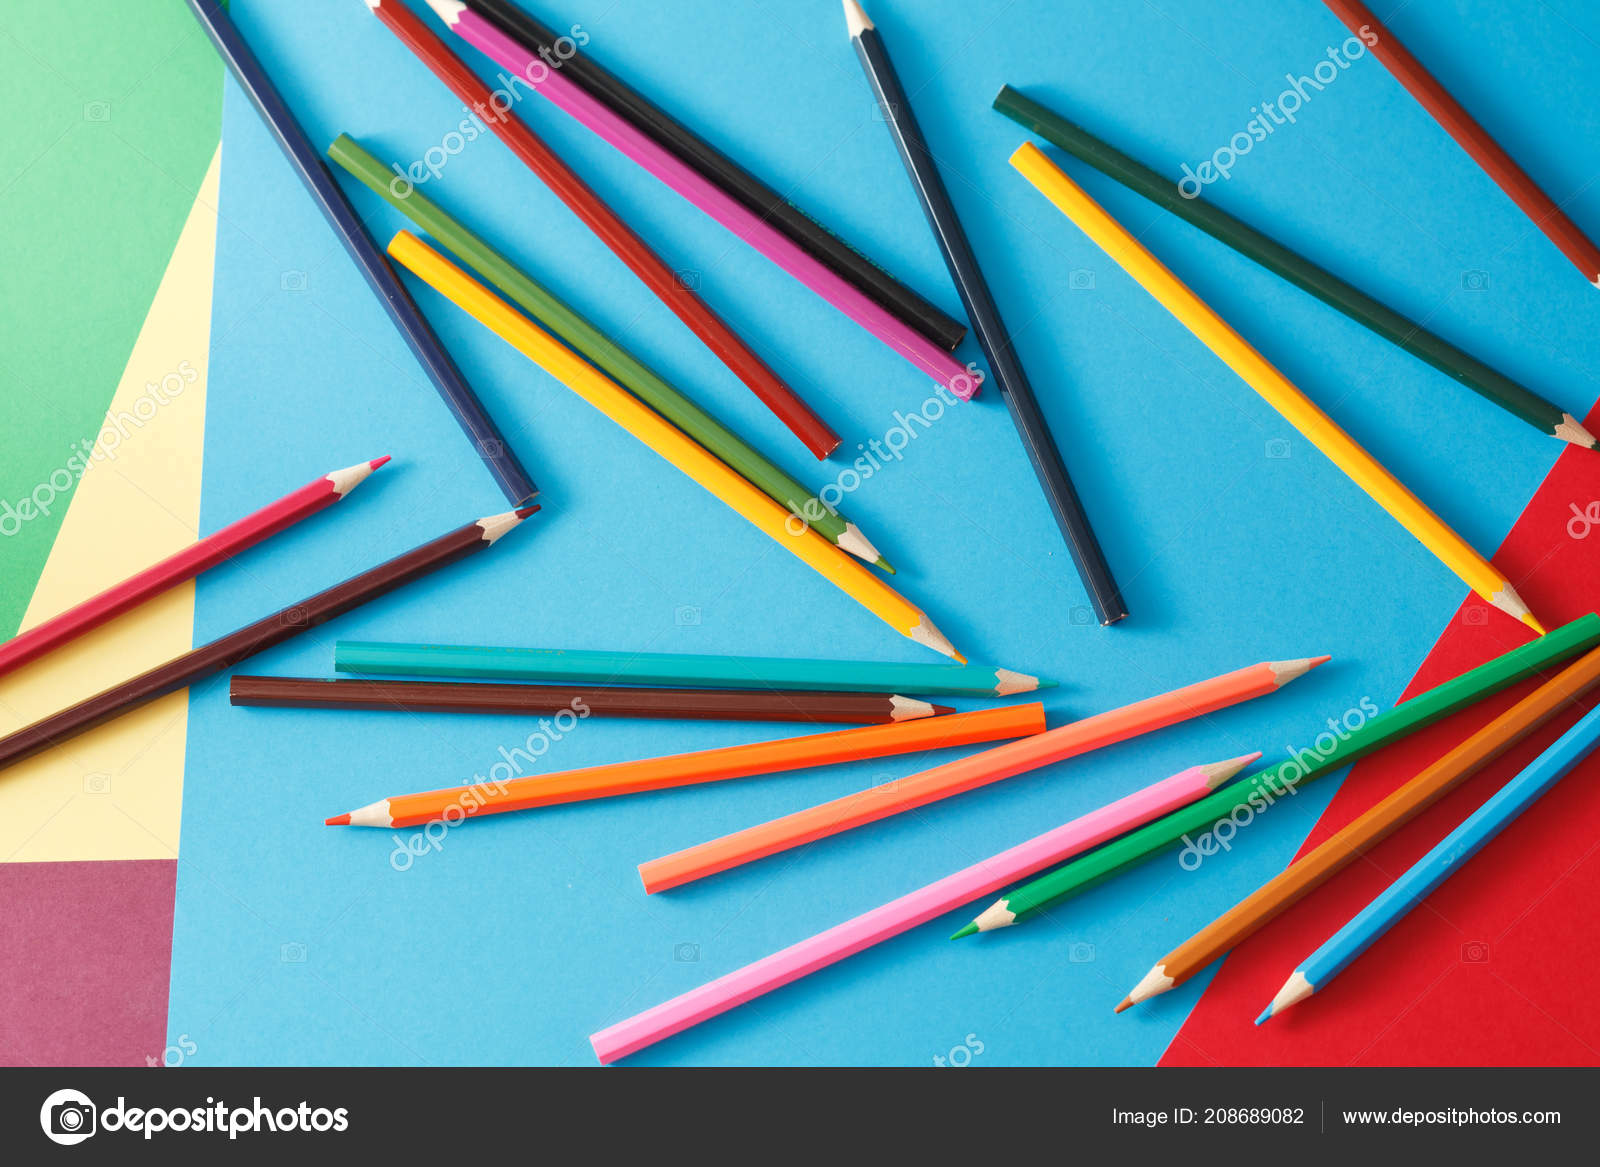 multicolored pencils colored paper stationery table stock photo